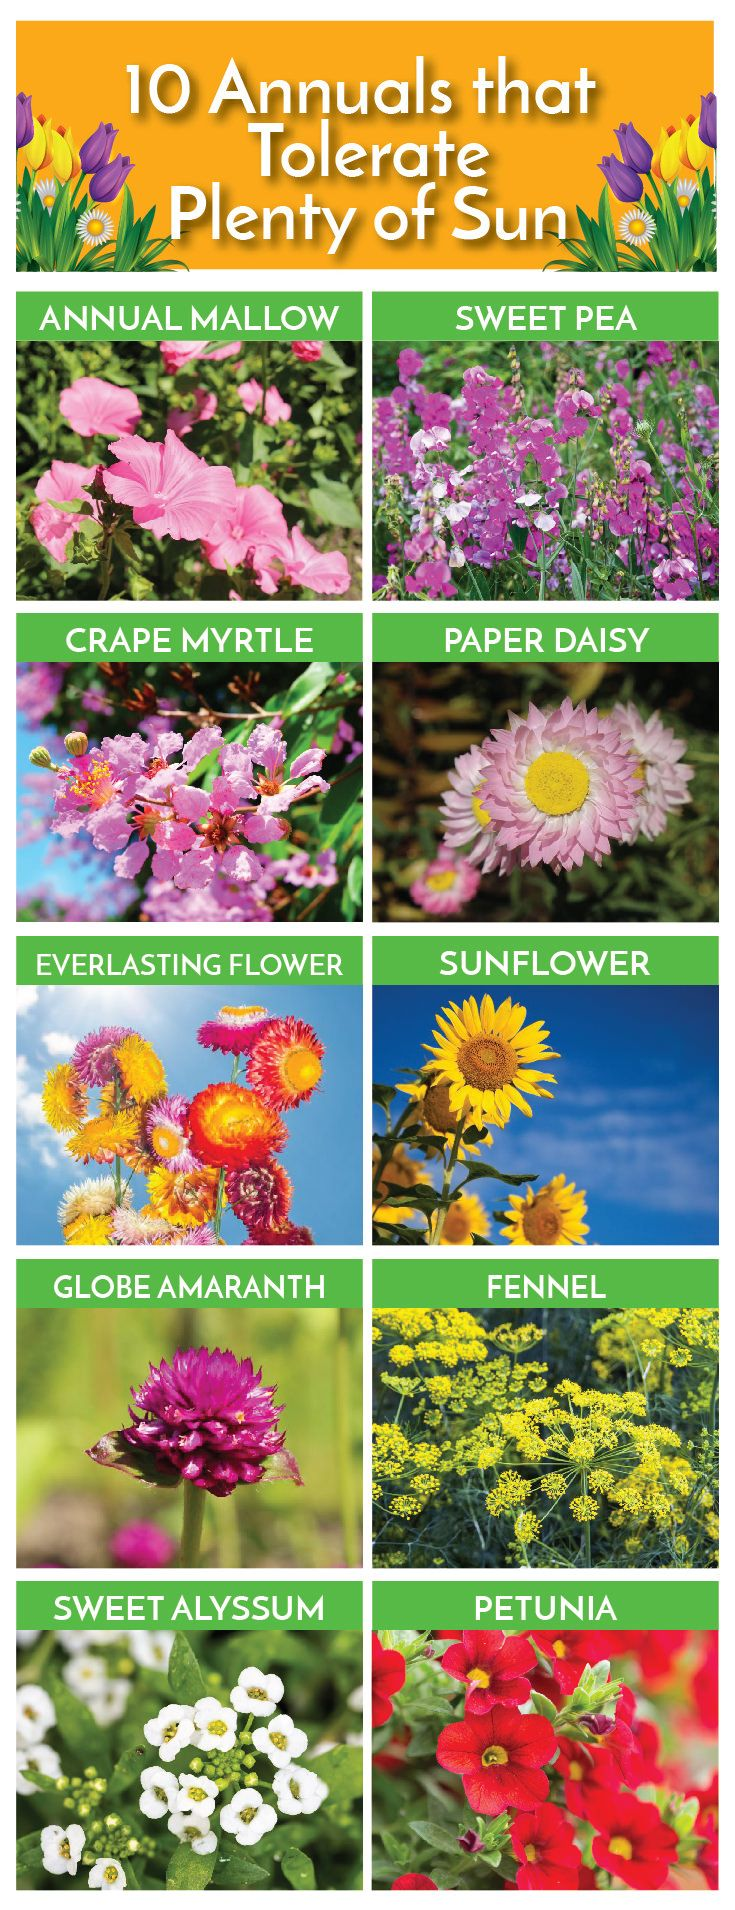 59 annuals that thrive in the sun a to z list with photos blank 59 annuals that thrive in the sun a to z list with photos annual flowersblank izmirmasajfo